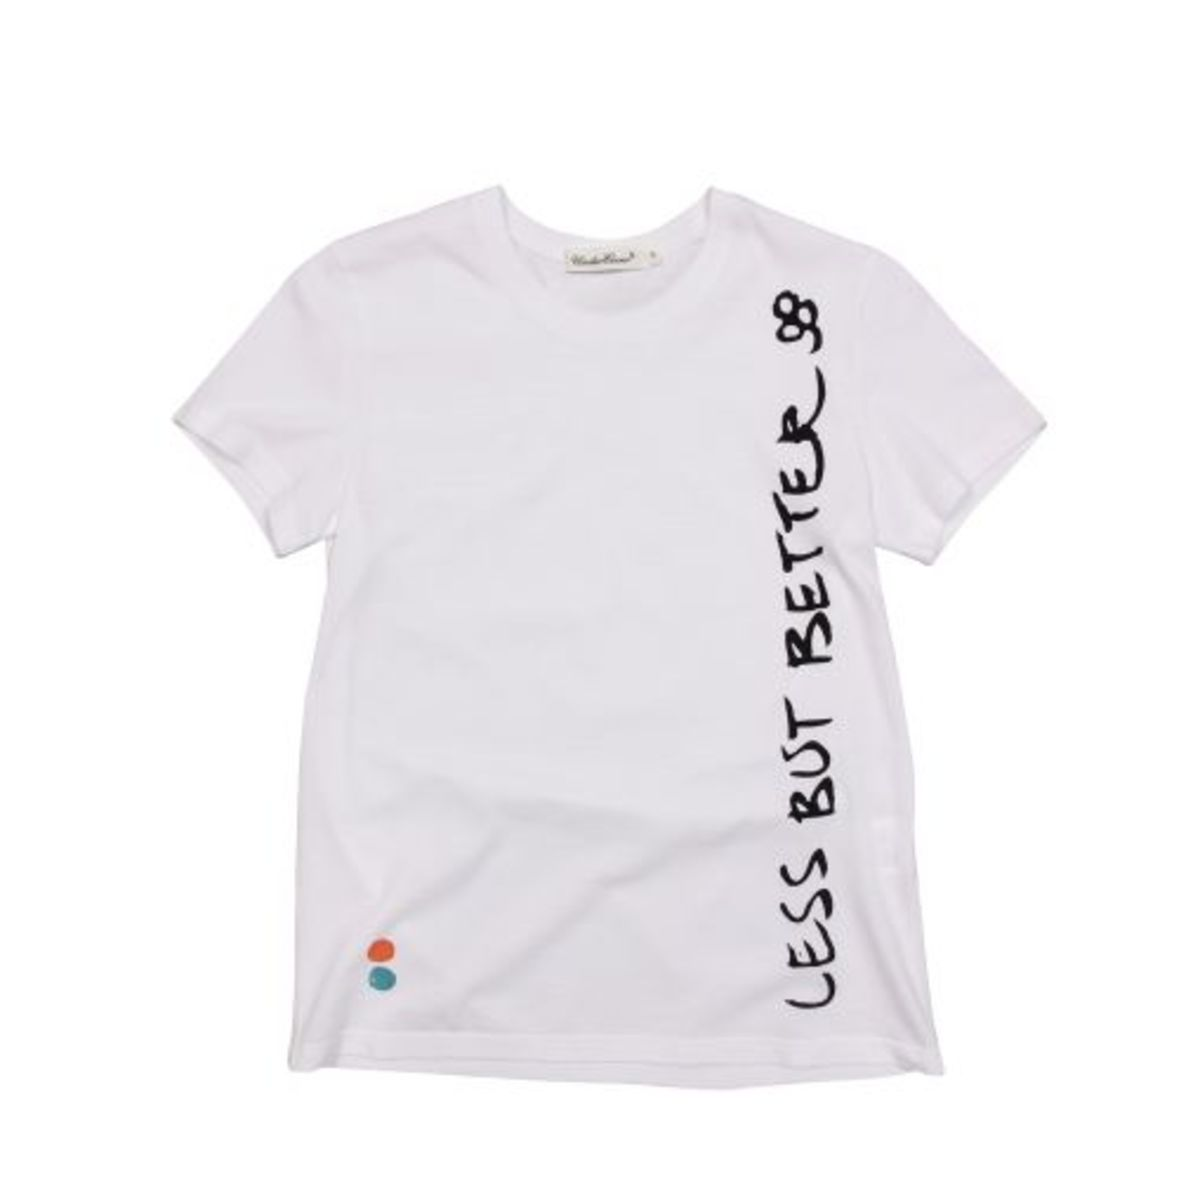 undercover_ss10_tee_3